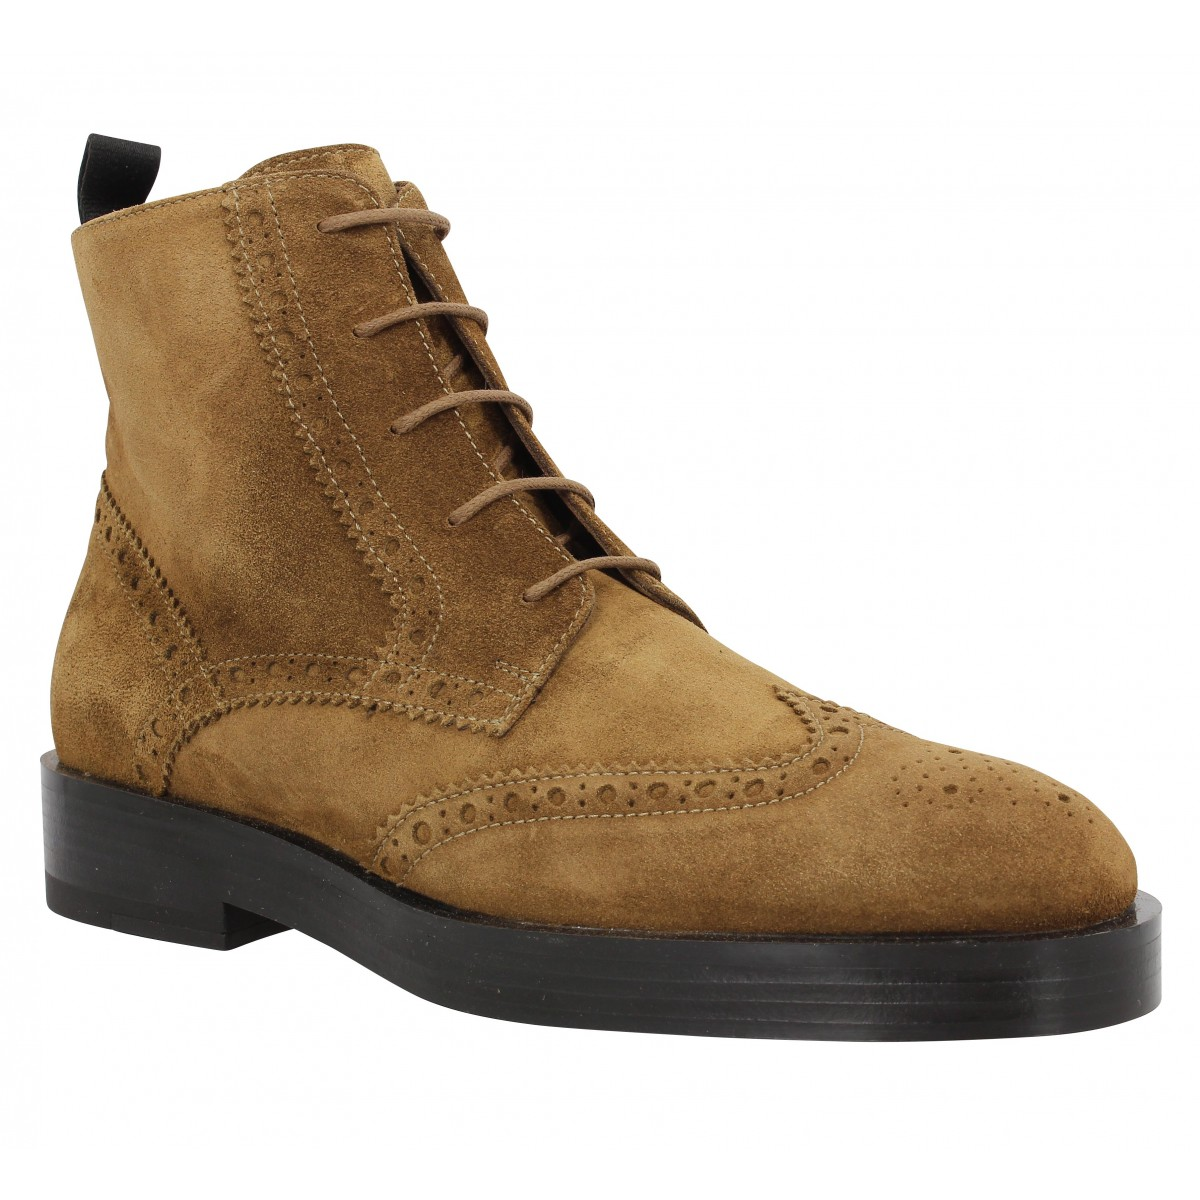 Bottines TRIVER FLIGHT 188 16 velours Marron